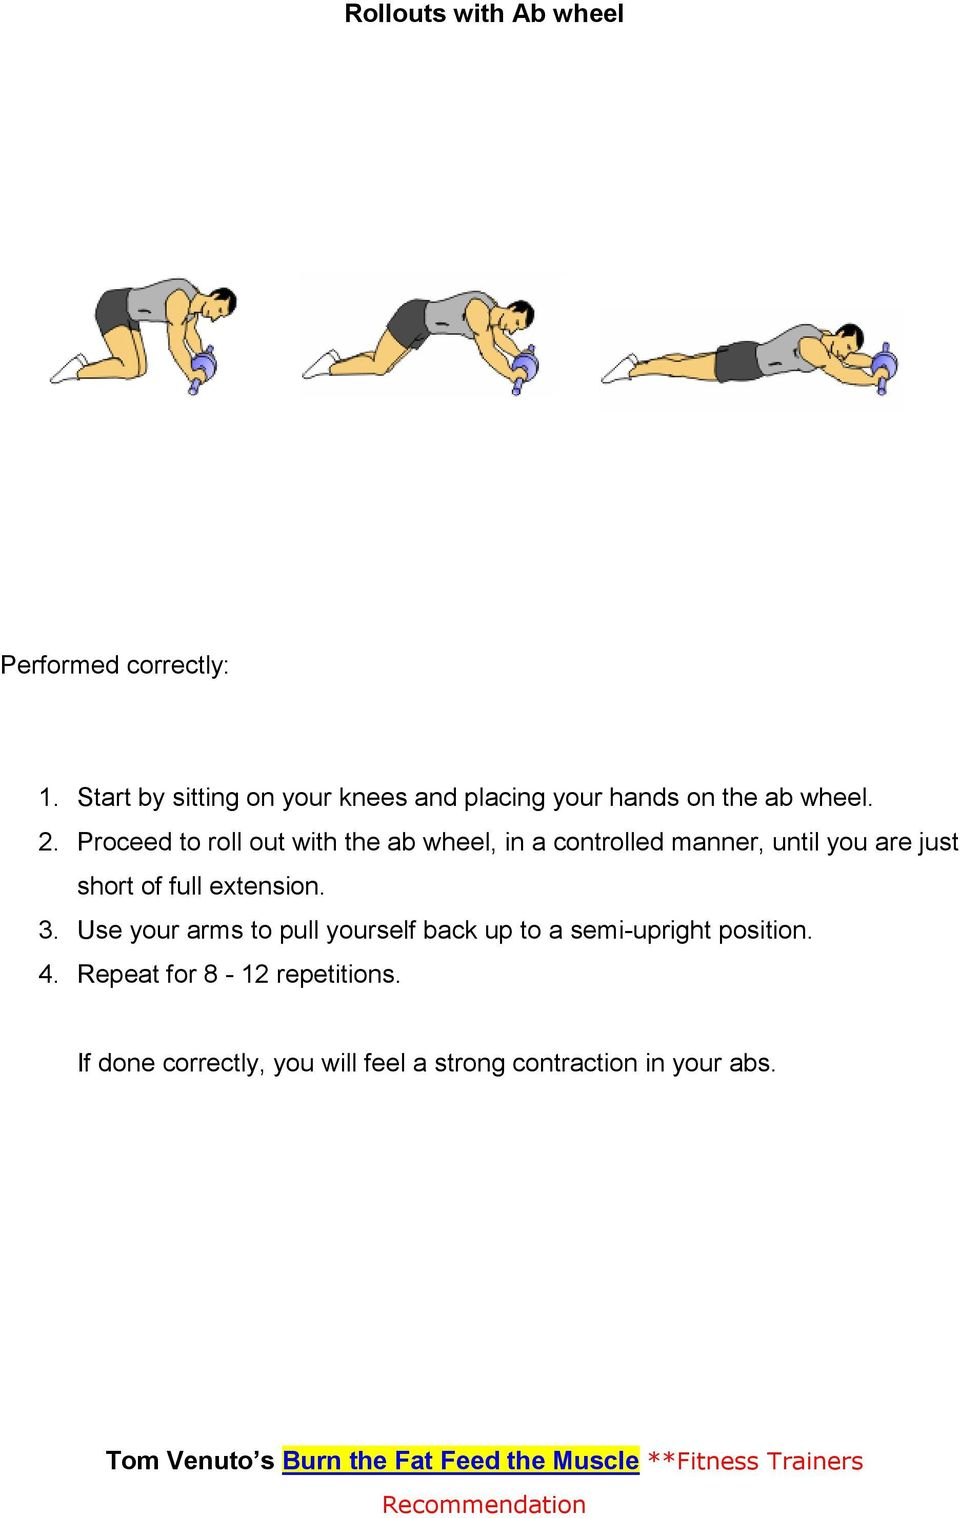 Proceed to roll out with the ab wheel, in a controlled manner, until you are just short of